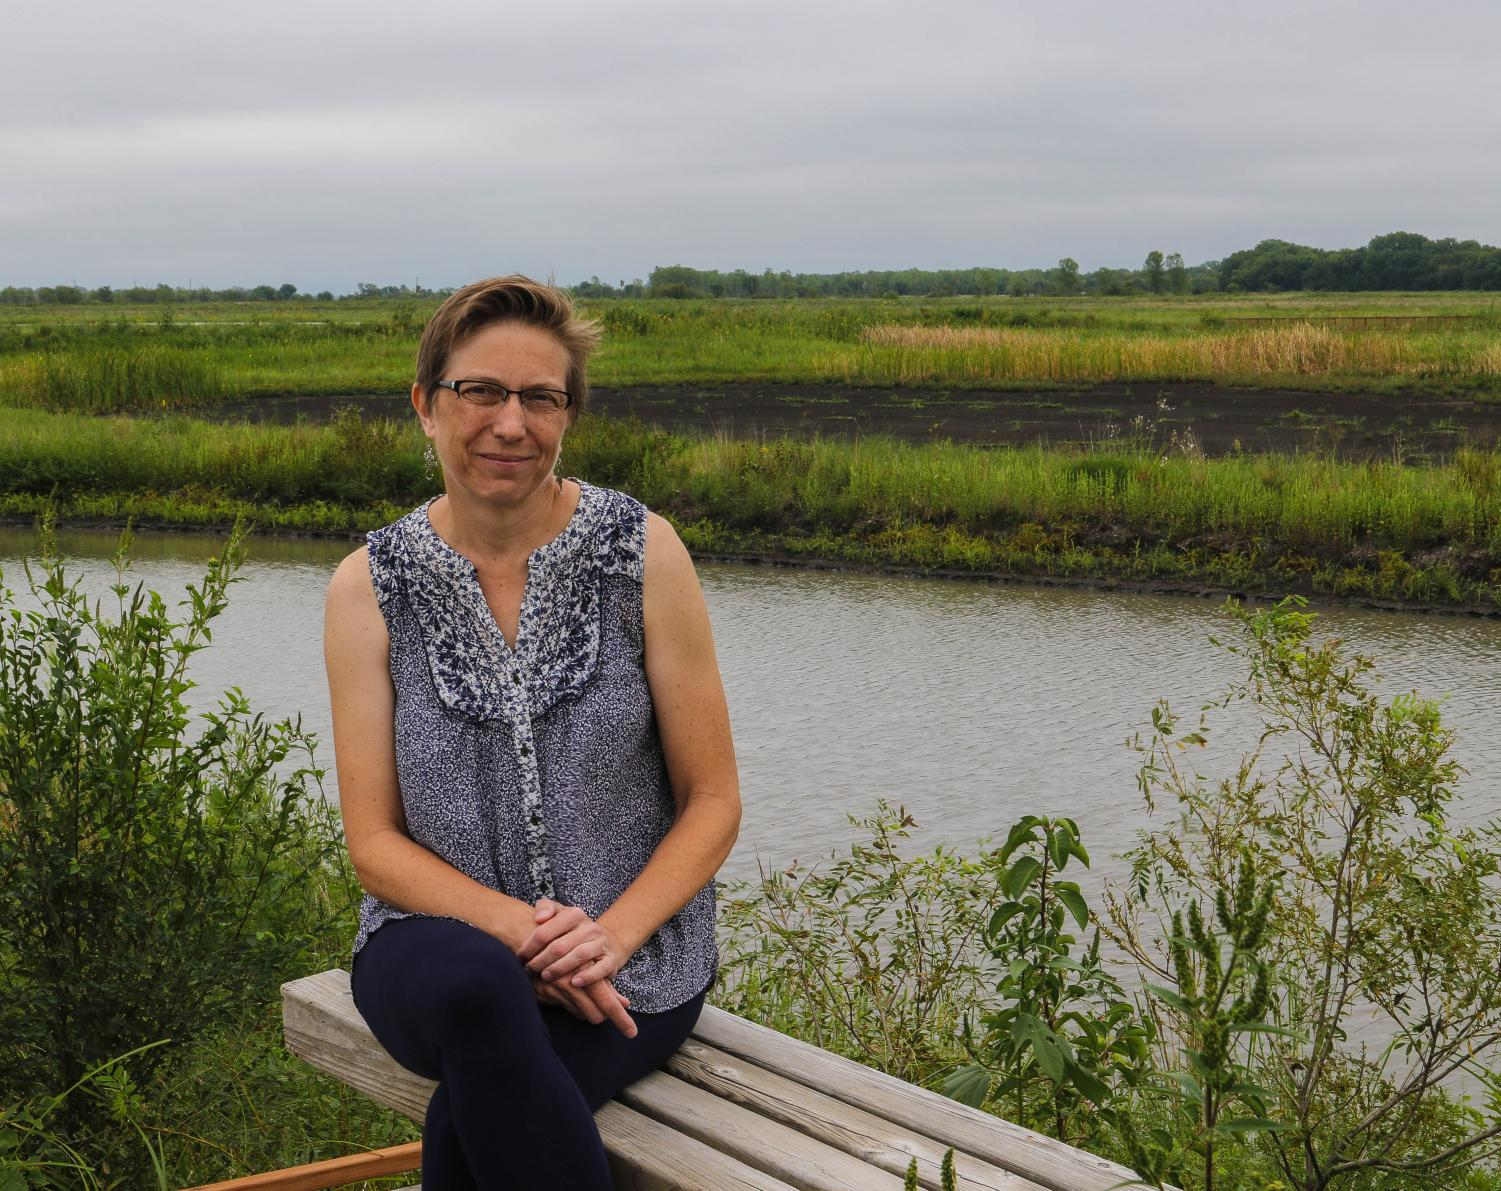 Director of the Baker Wetlands and Associate Professor of Biology Irene is one of the new professors welcomed to campus this semester.